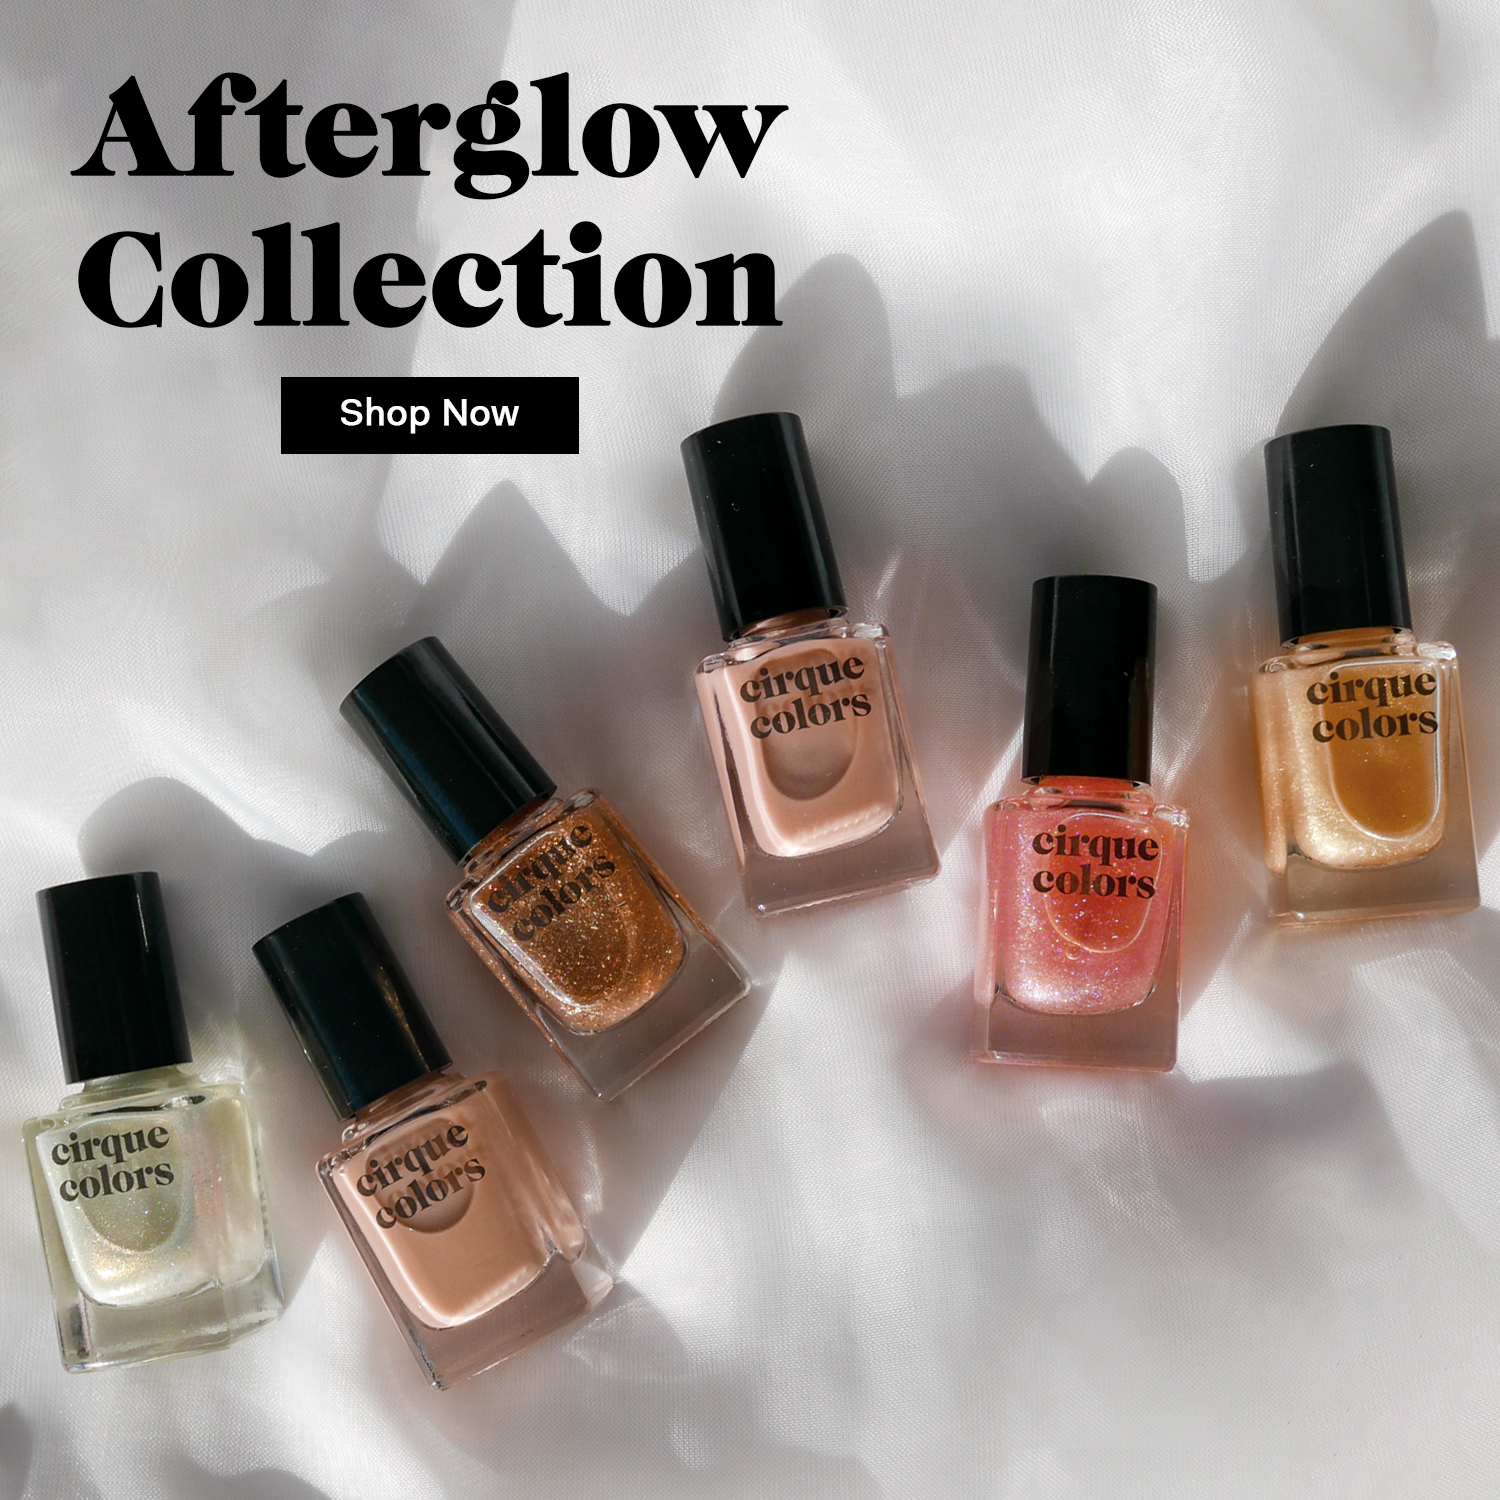 Afterglow Collection